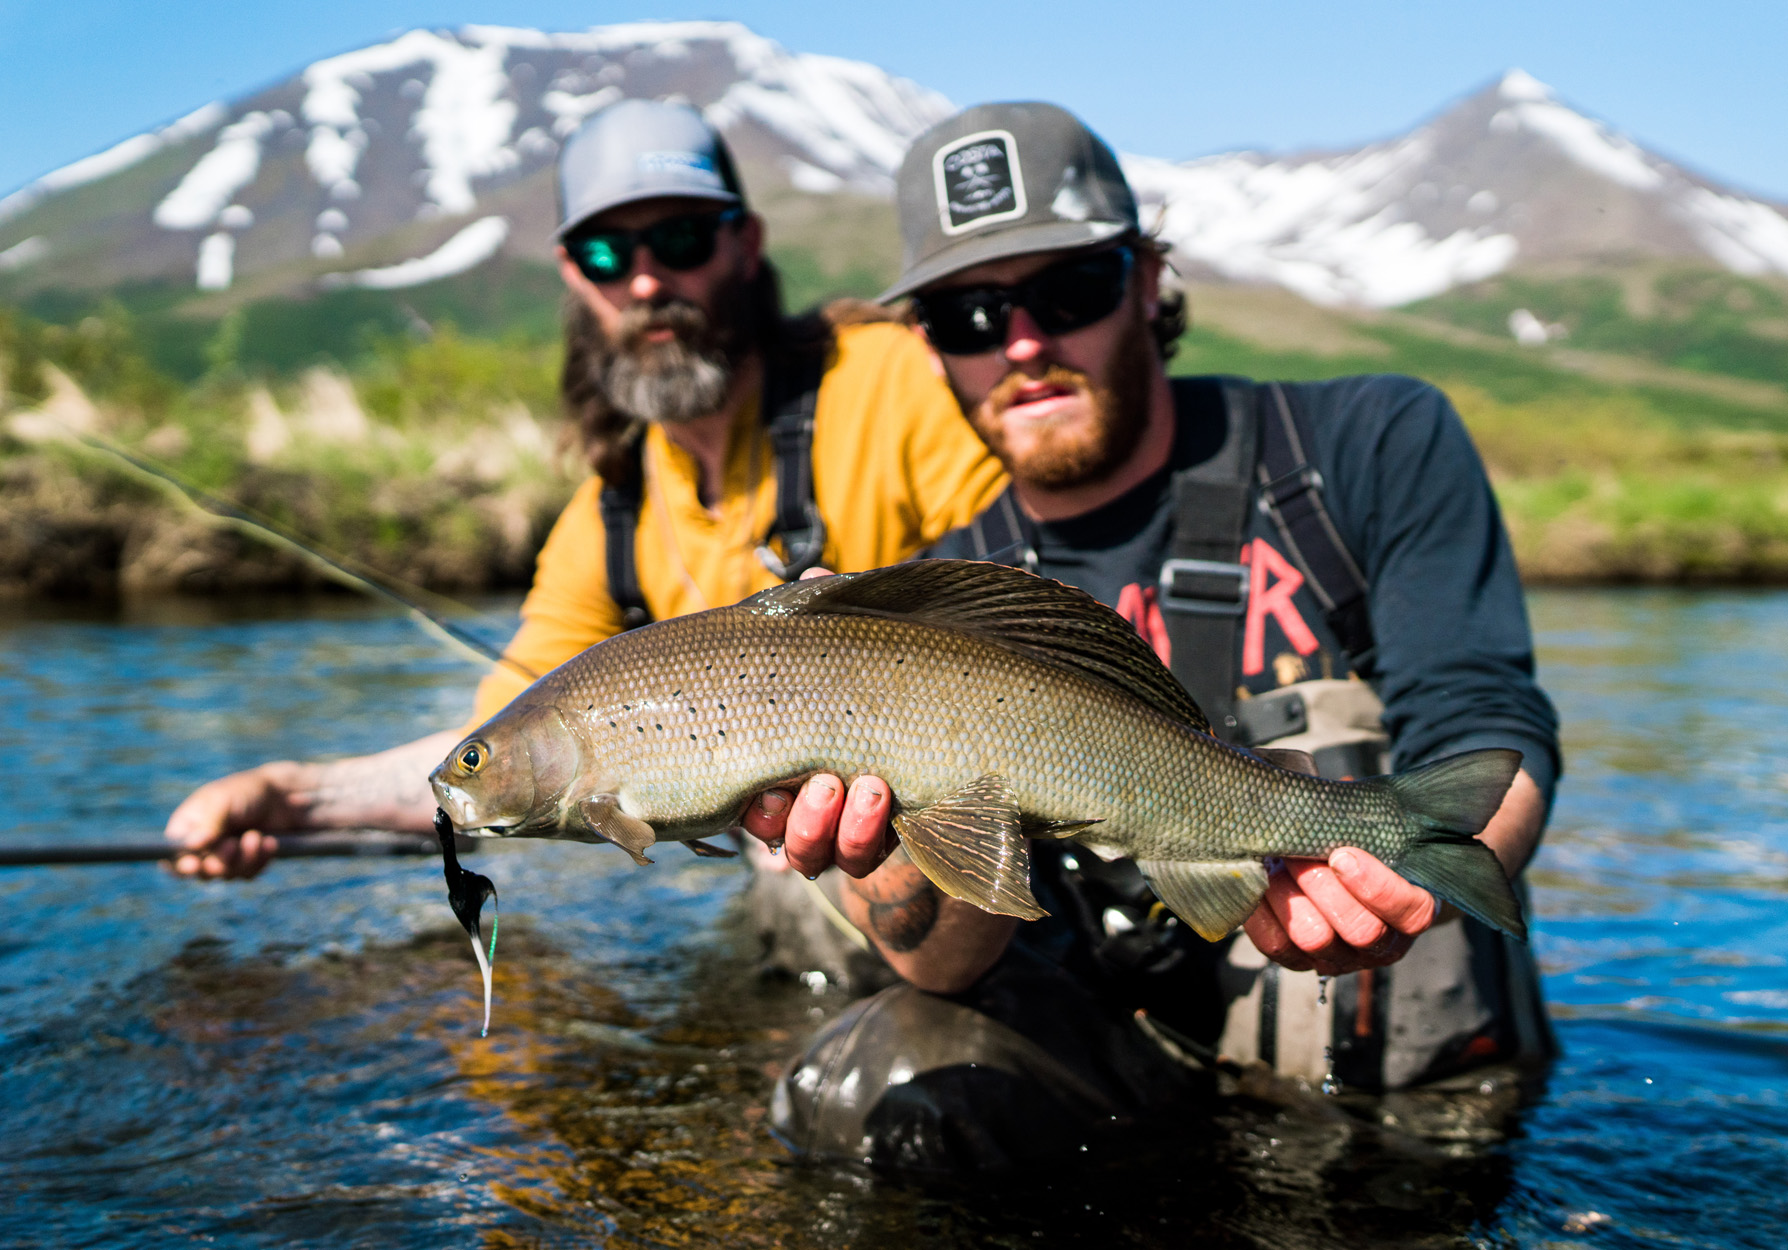 FlyLords Fly Fishing